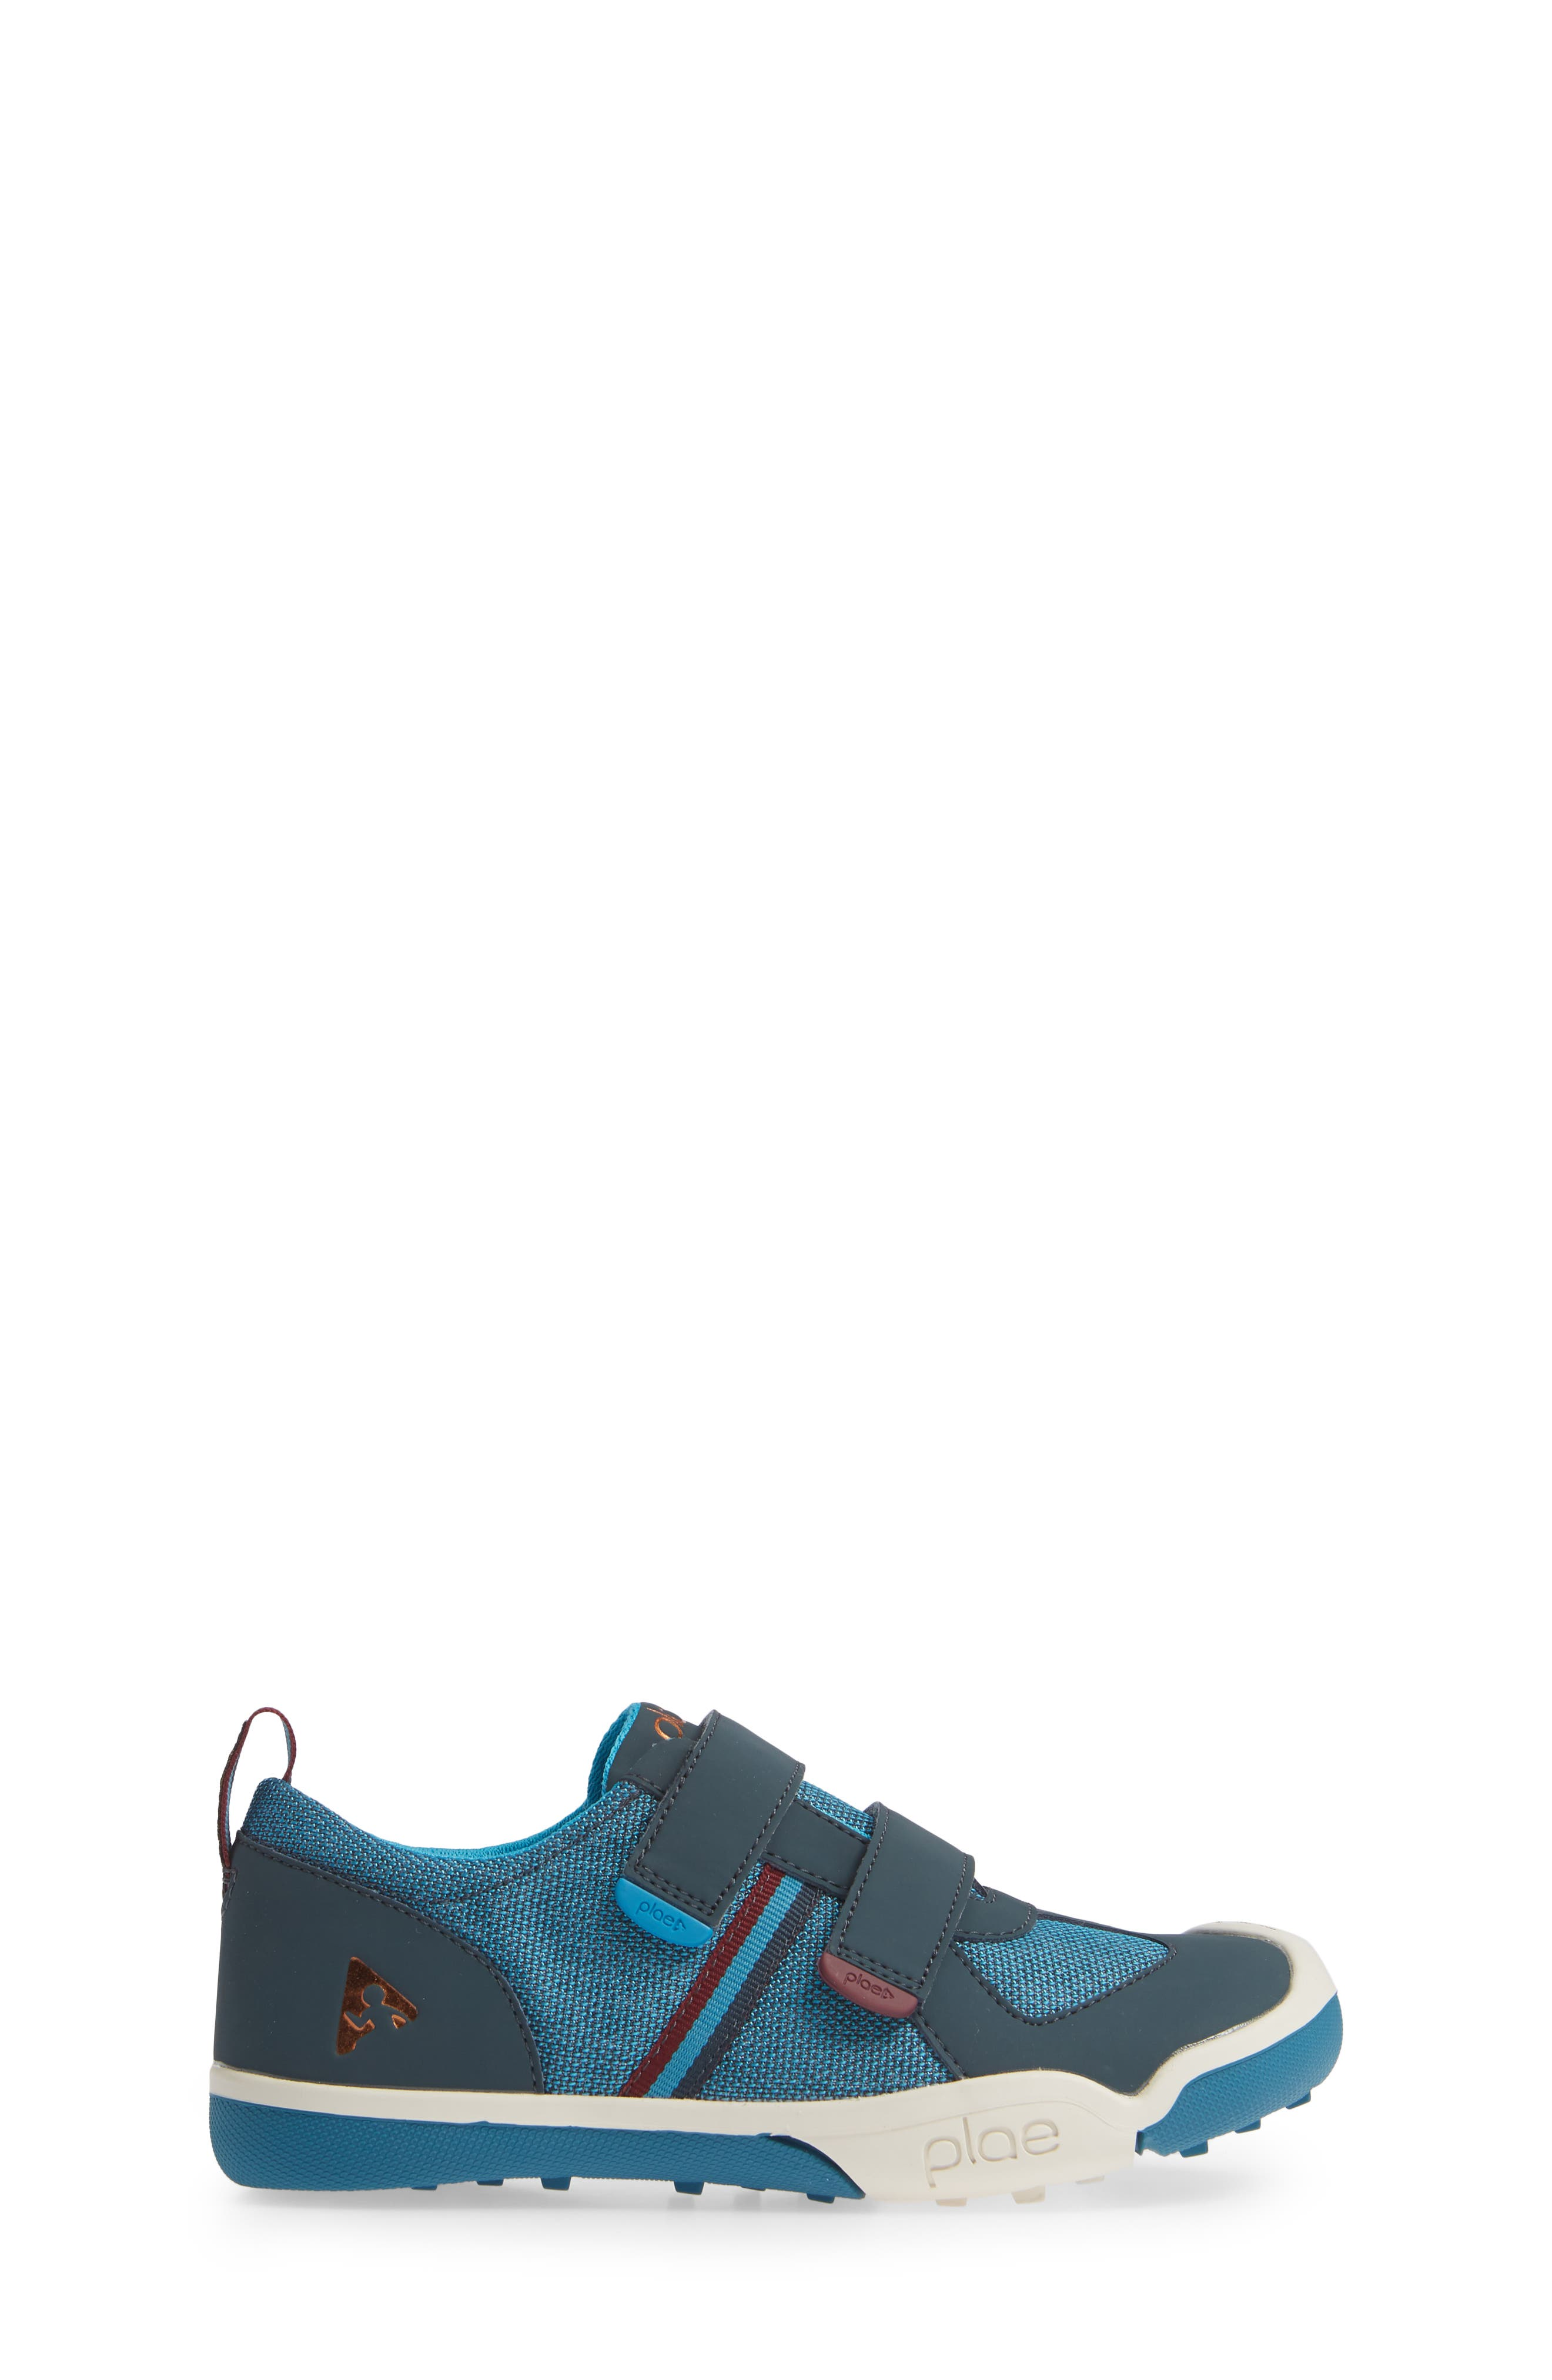 Charlie Customizable Sneaker,                             Alternate thumbnail 3, color,                             BLUE MARLIN